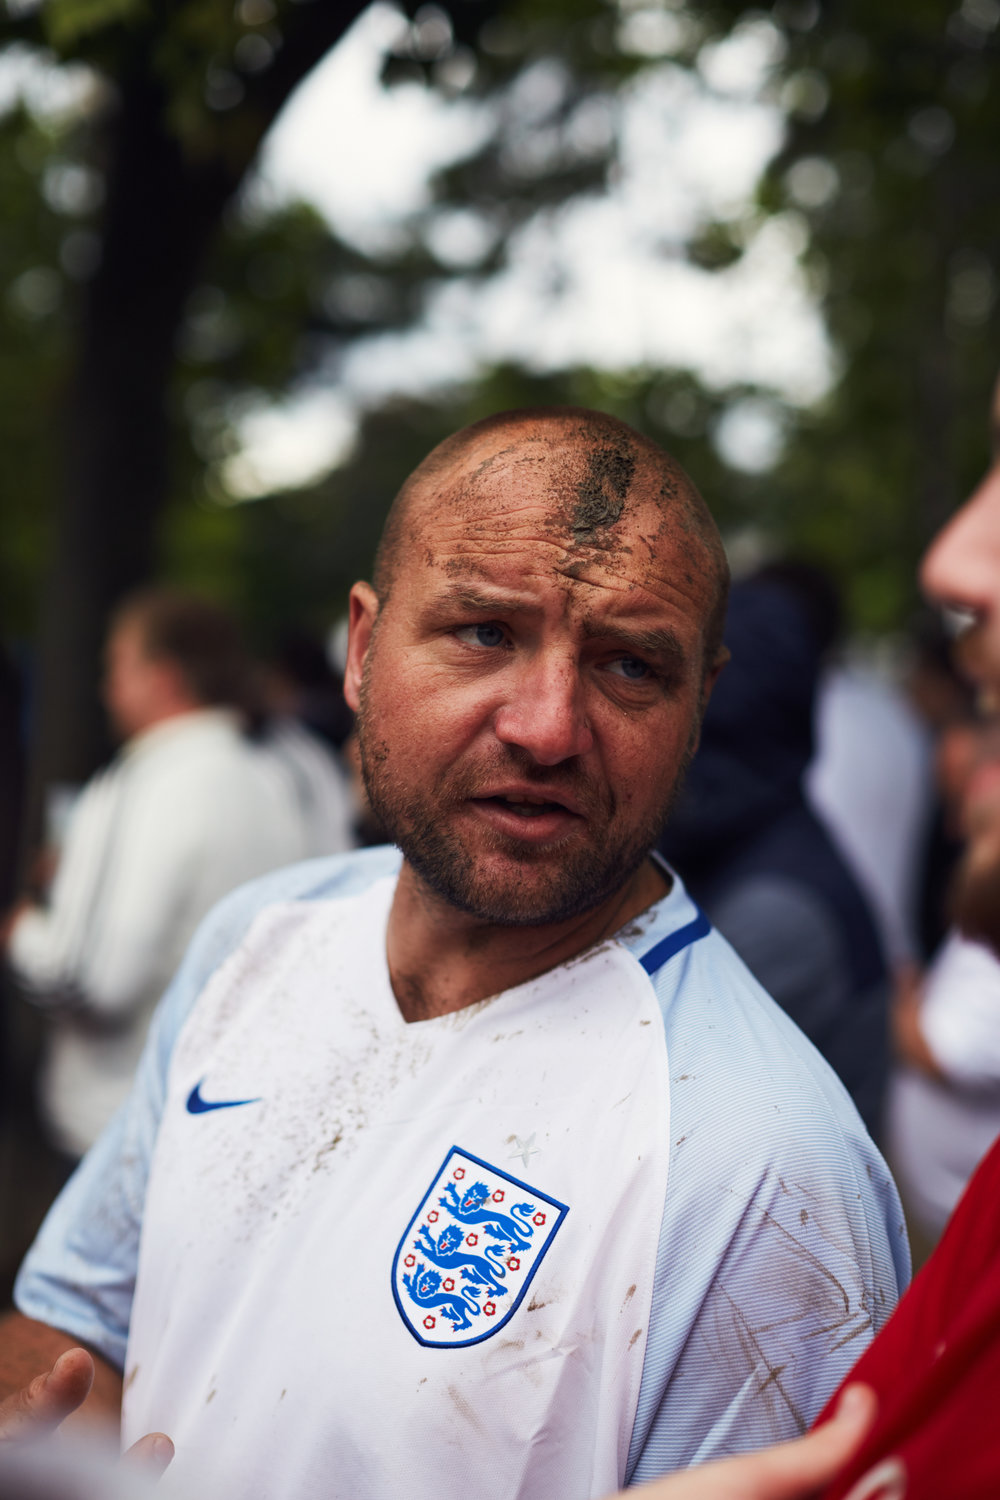 England fan, Eiffel Tower fanzone, Euro 2016